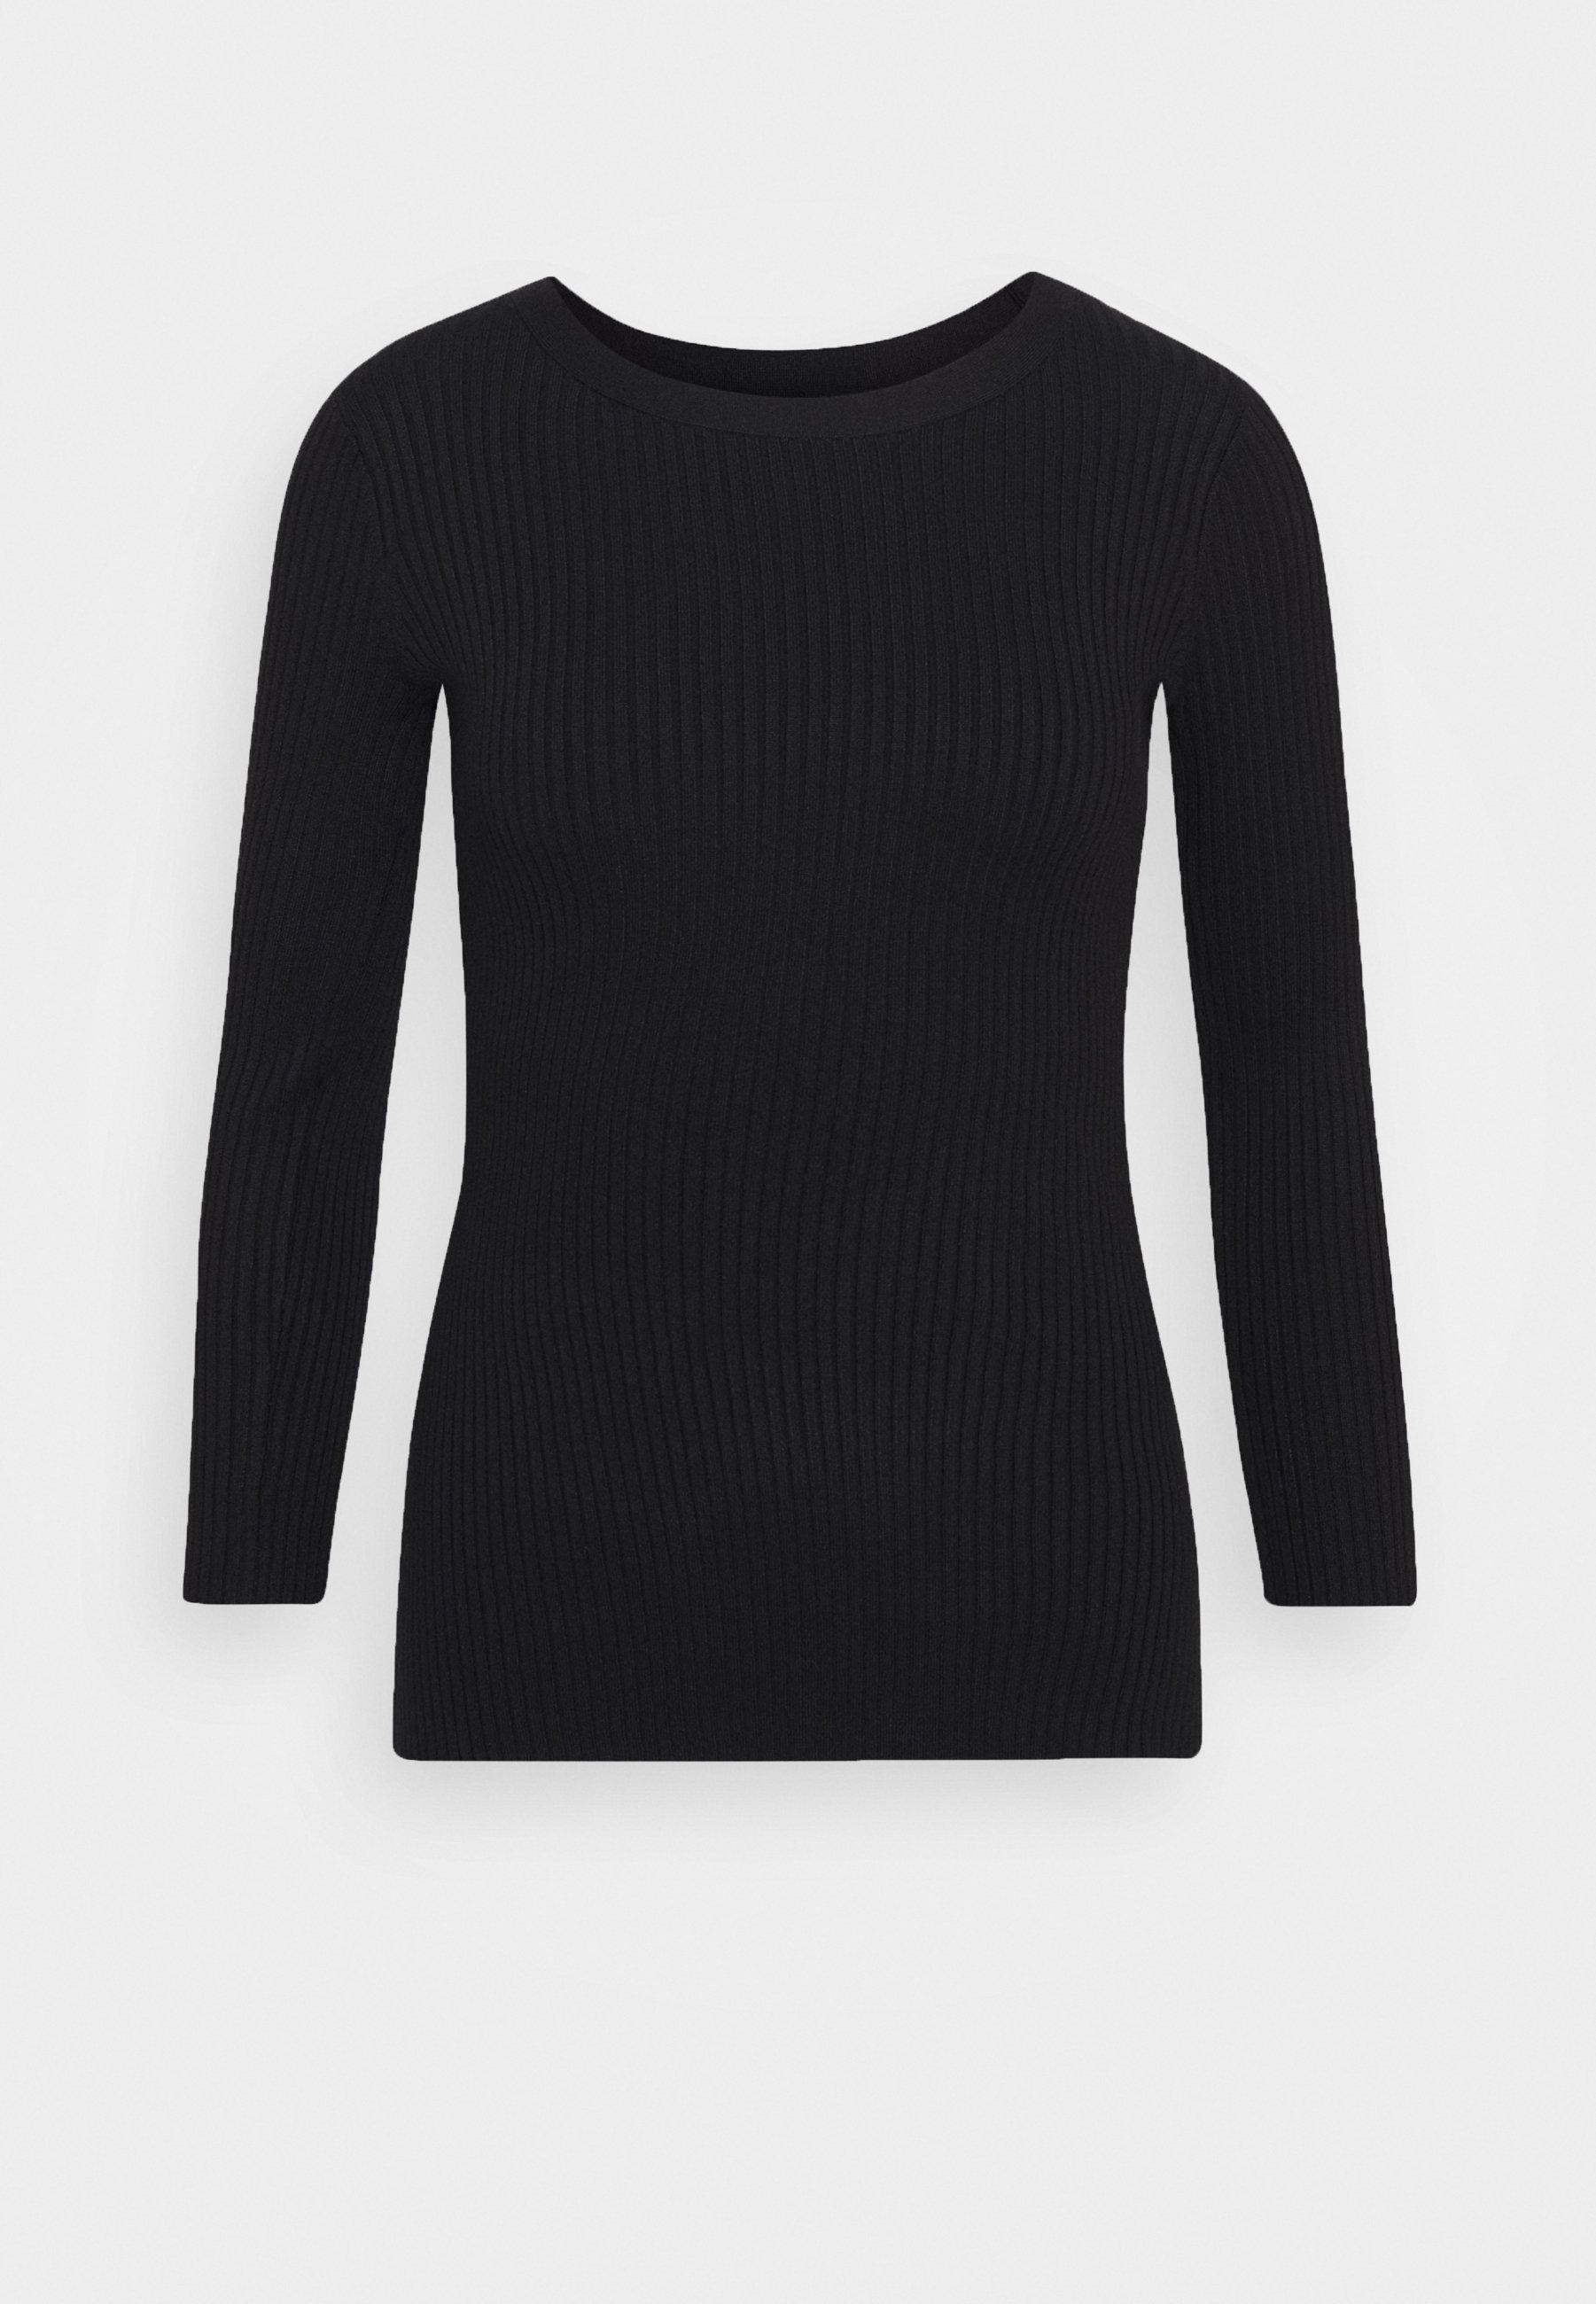 Anna Field BASIC rib 34 sleeve jumper Trui blackZwart